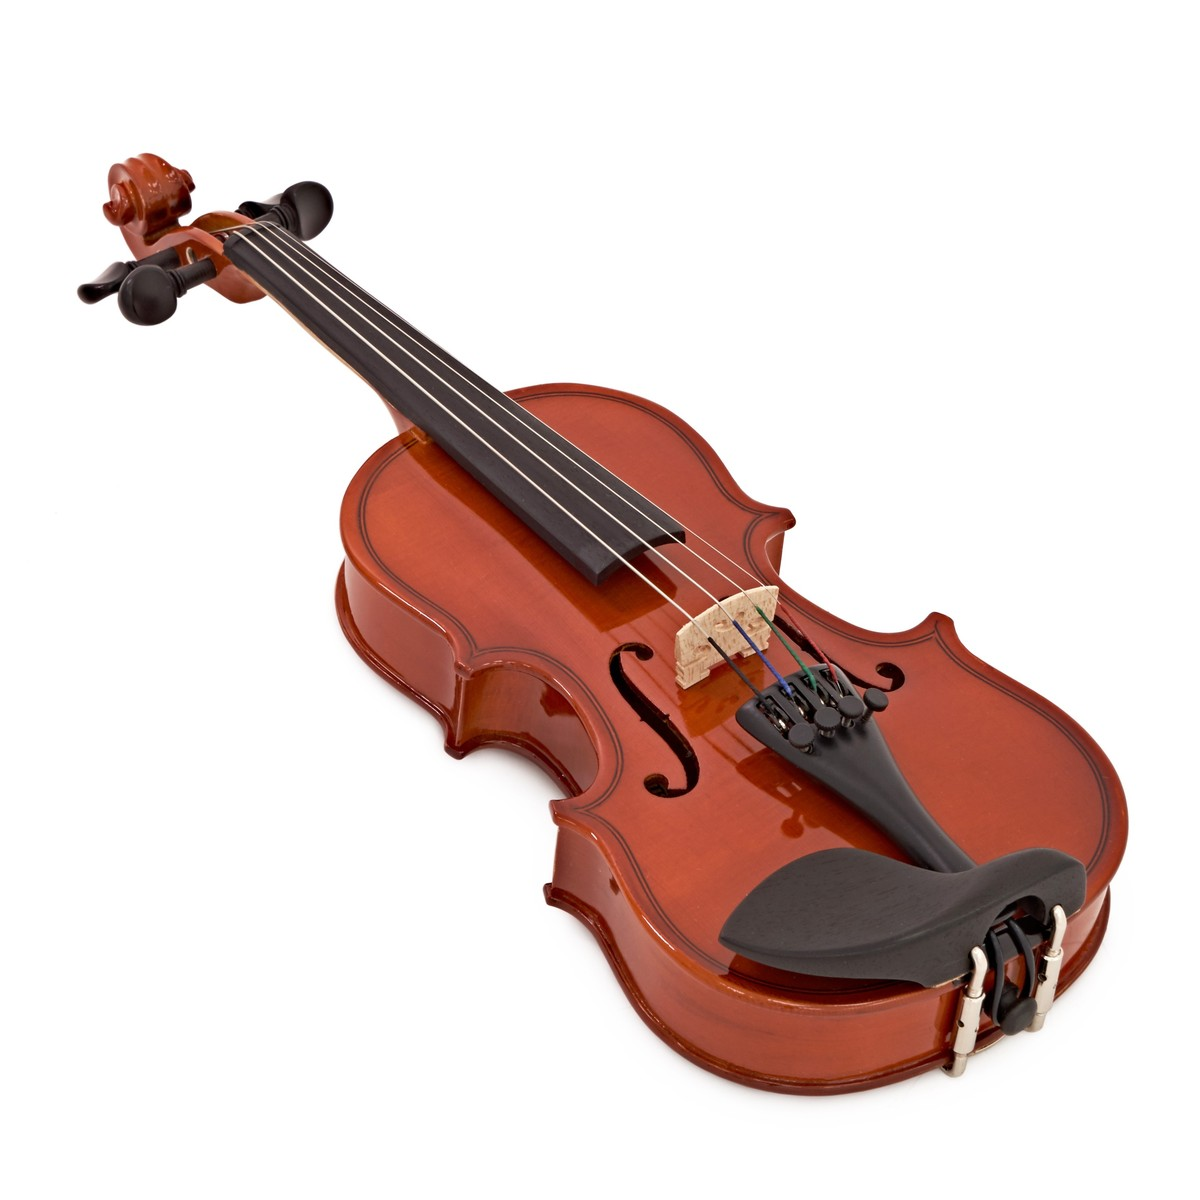 Student 1 16 Violin By Gear4music Box Opened At Gear4music